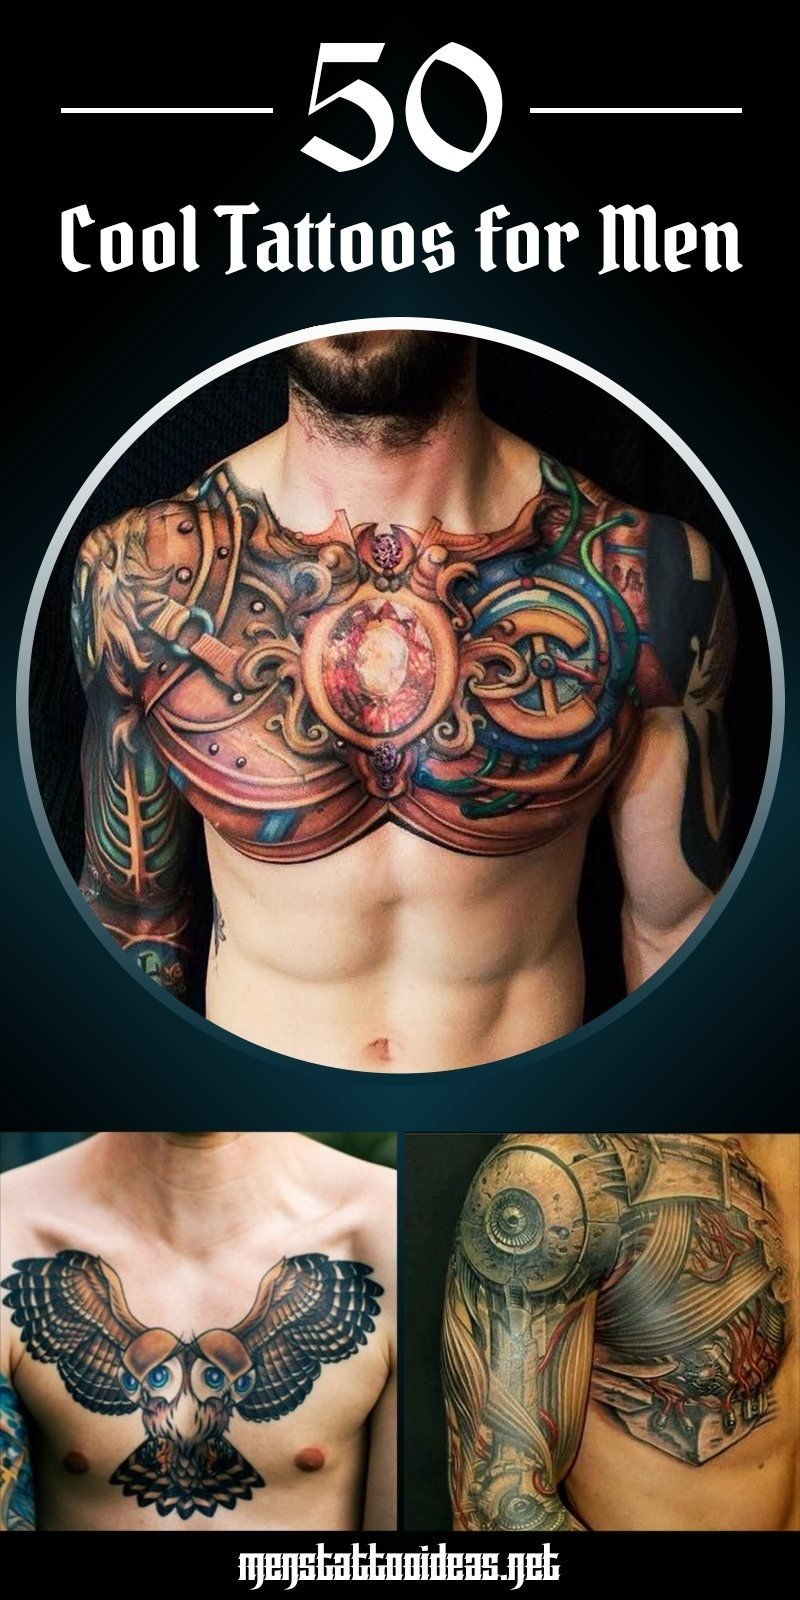 10 Cute Cool Tattoo Ideas For Guys cool tattoos for men best tattoo ideas and designs for guys